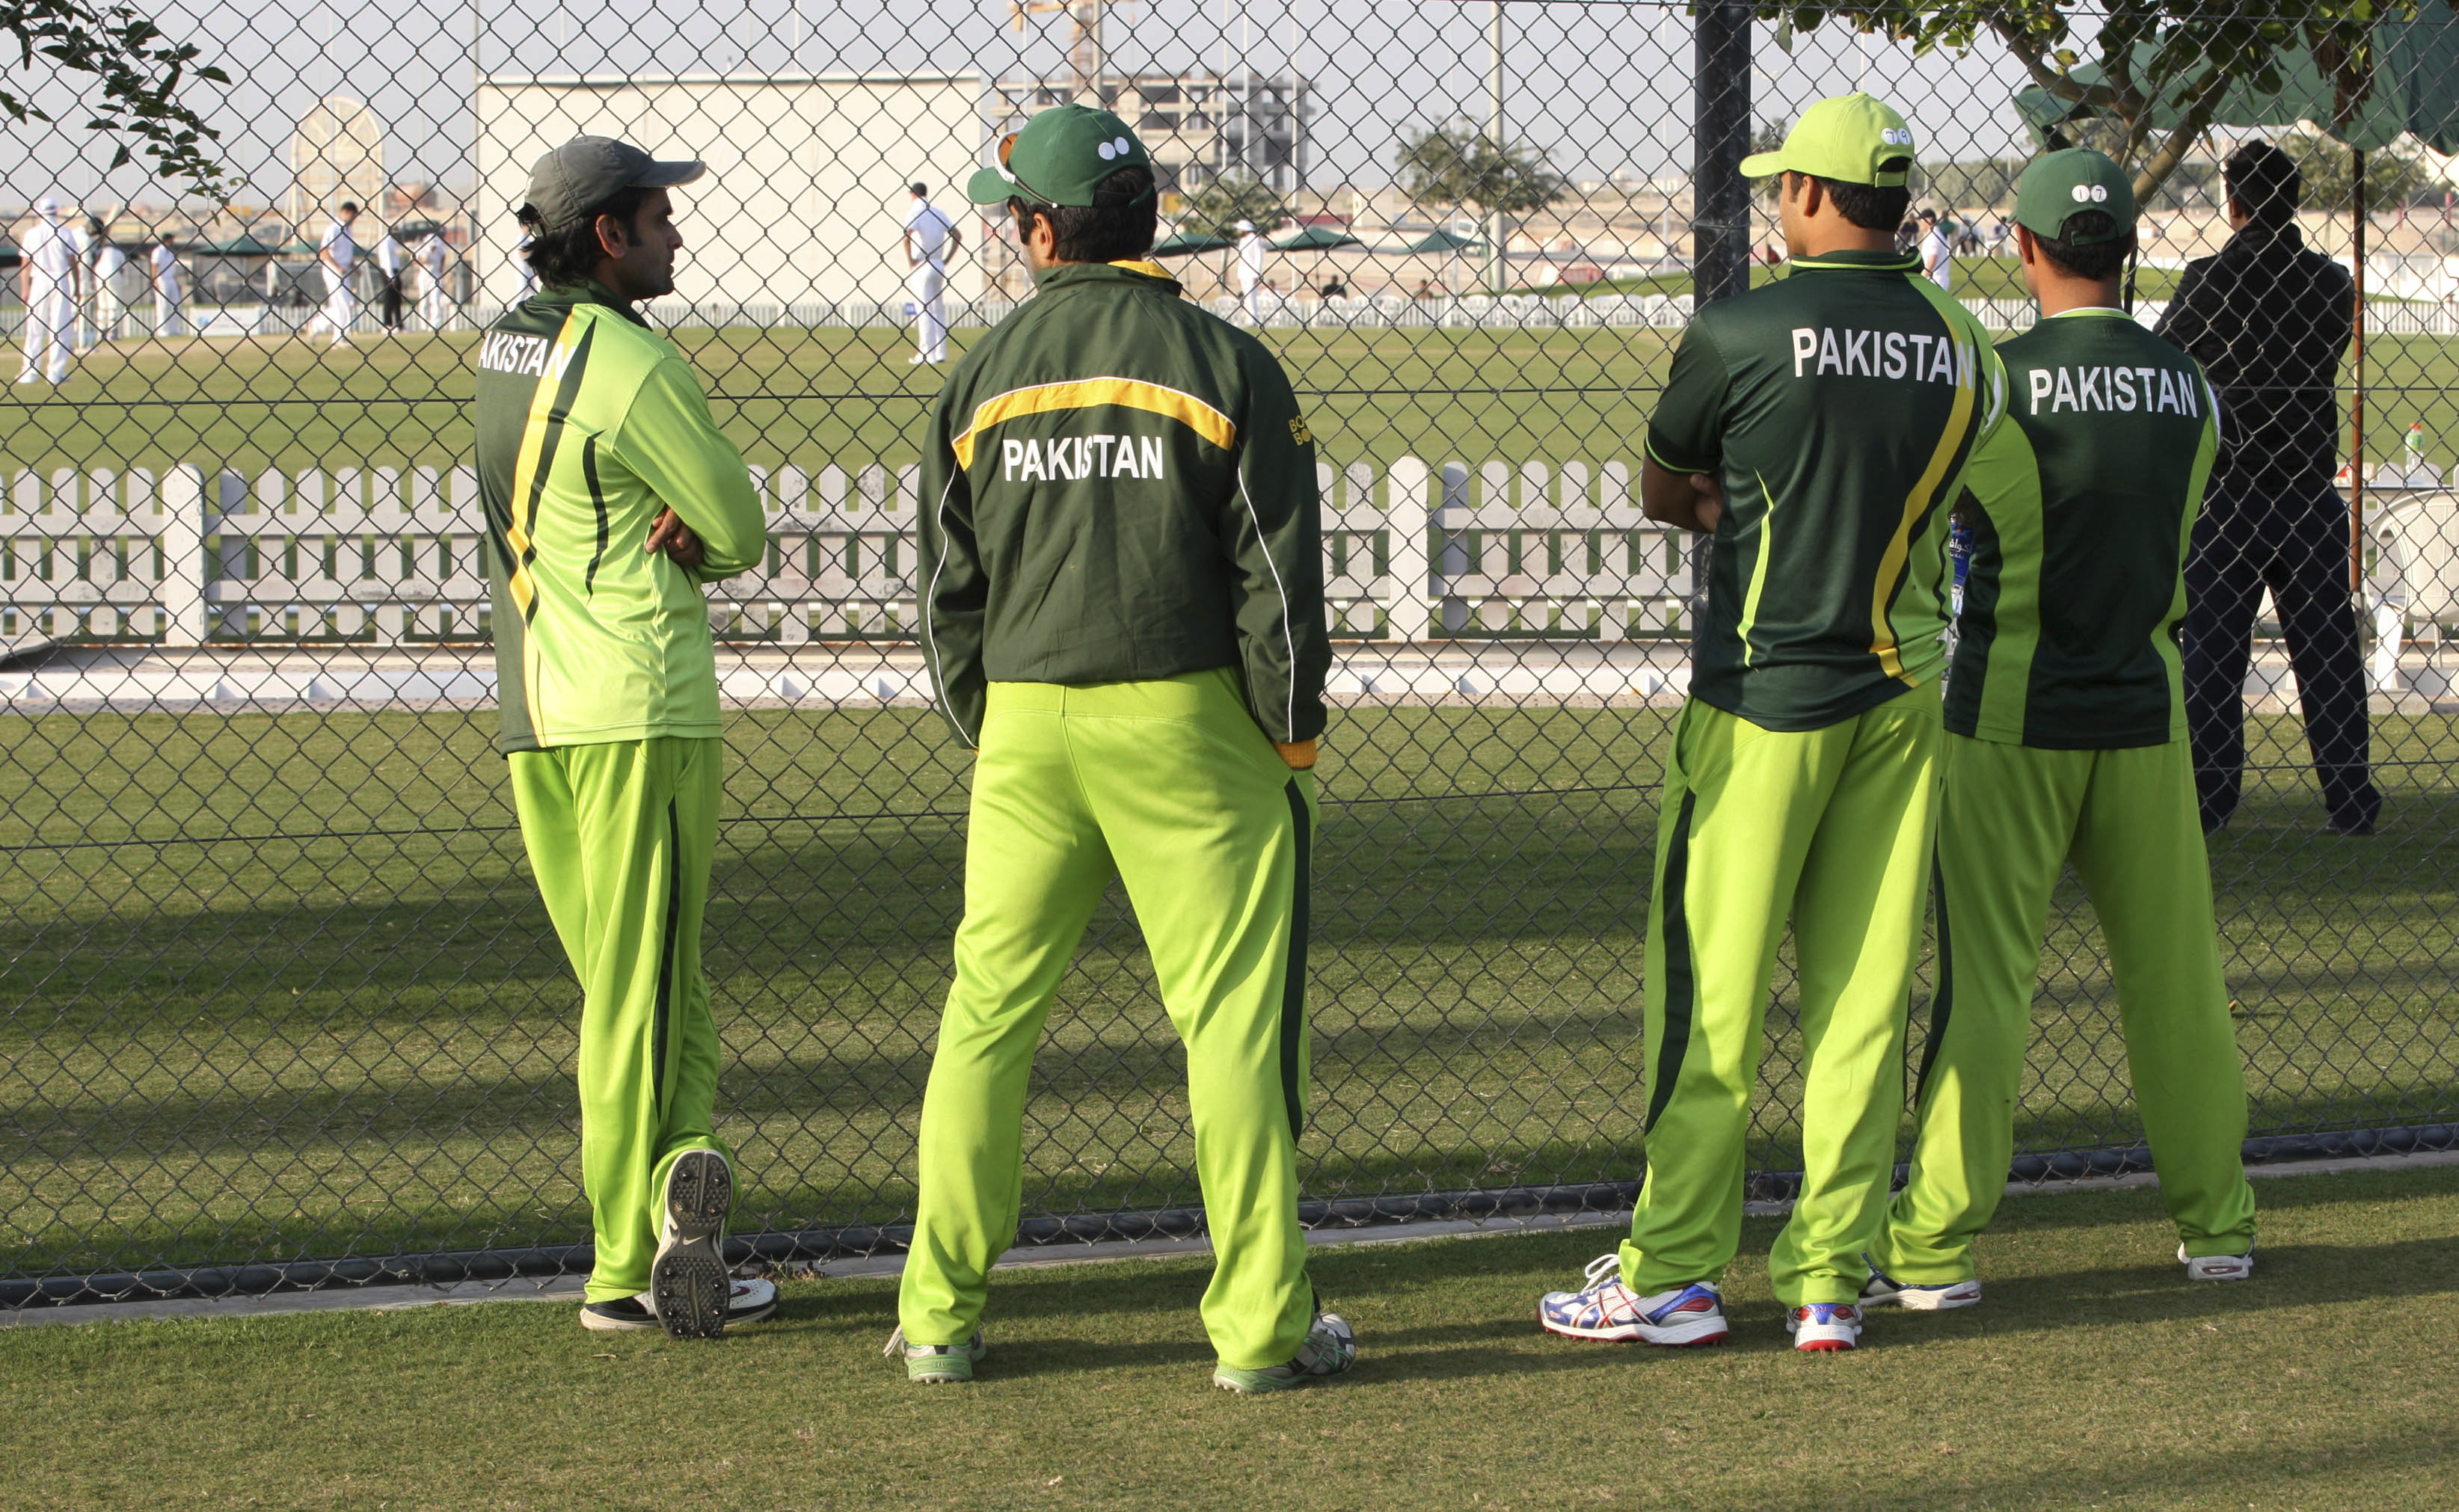 PCB to spend Rs15 million on Covid-19 testing during domestic season